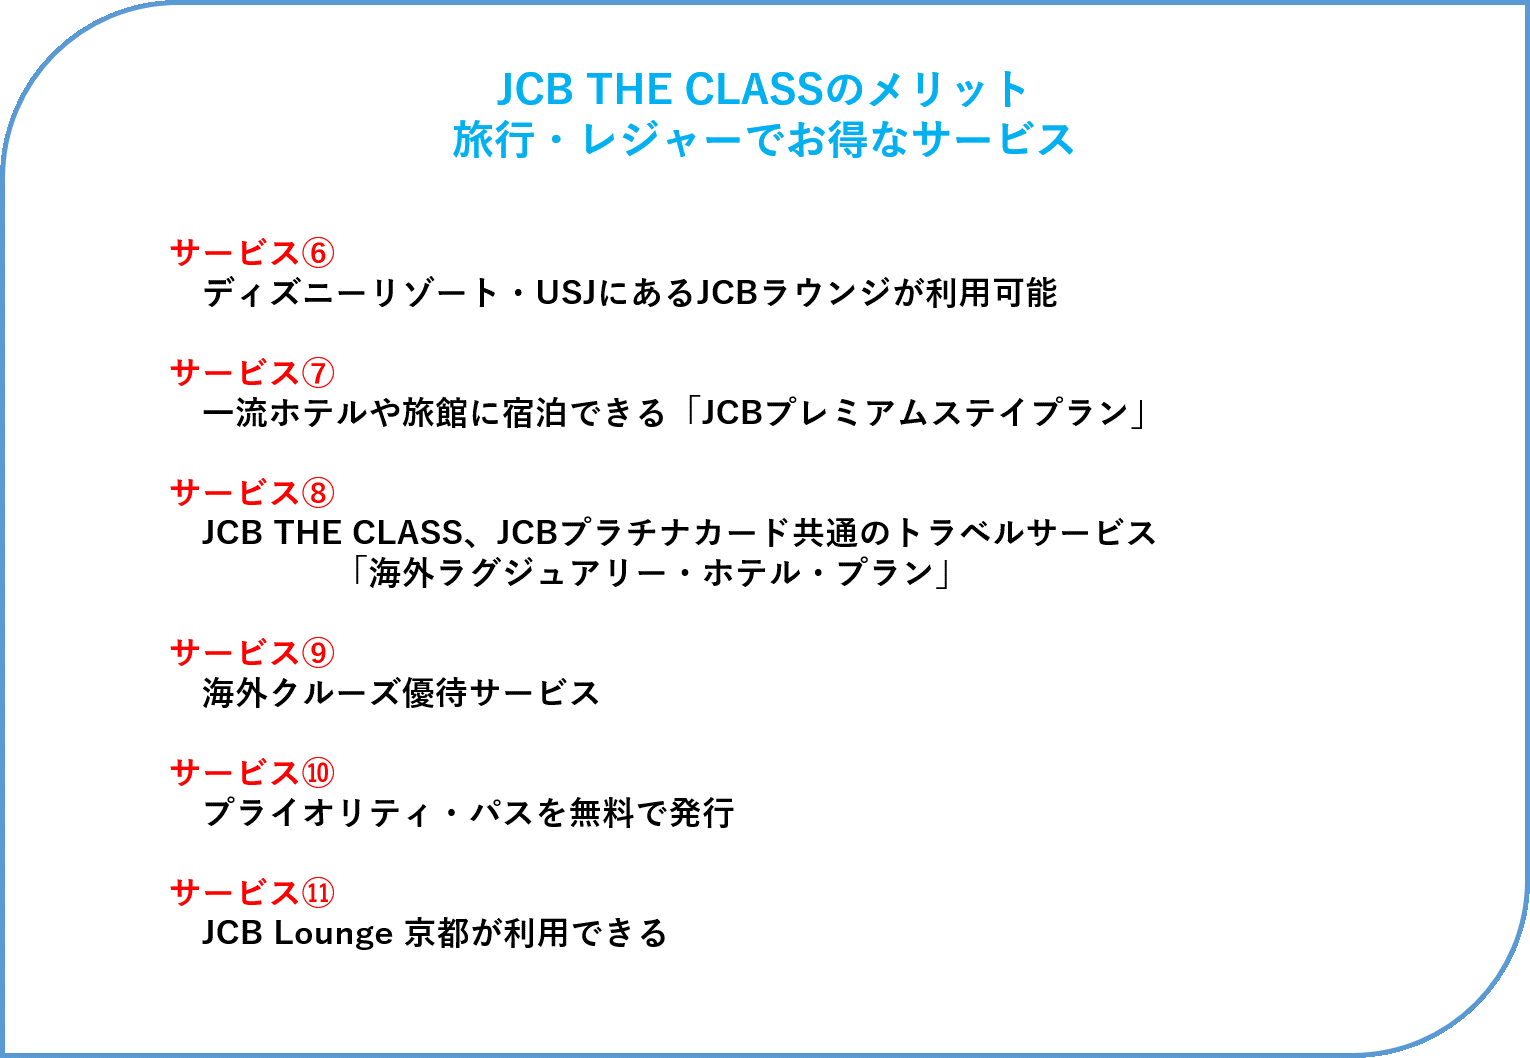 JCB THE CLASSのメリット 旅行・レジャーでお得なサービス